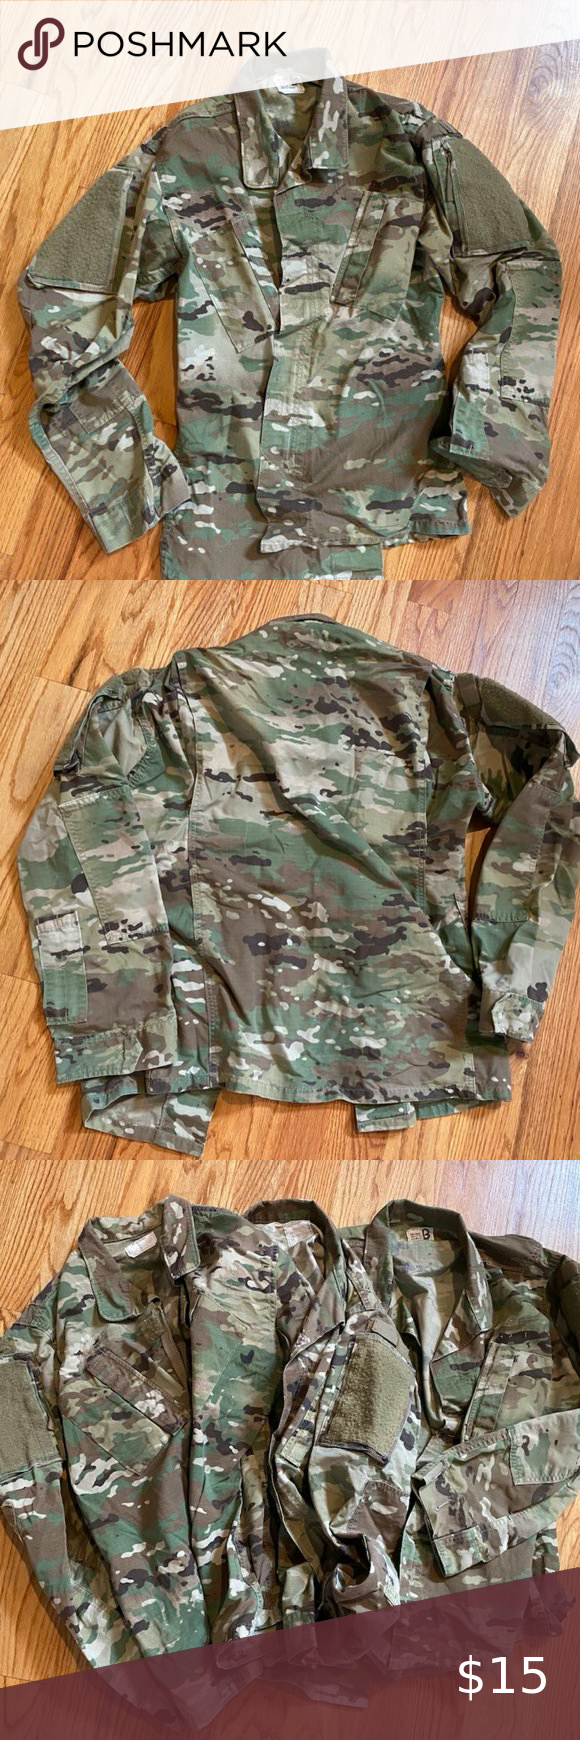 Army Ocp Camouflage Men S Blouse Small Regular Army Ocp Camouflage Men S Blouse Shirt Size Small Regular Shirts Are In G In 2020 Army Jacket Shirt Blouses Shirt Size